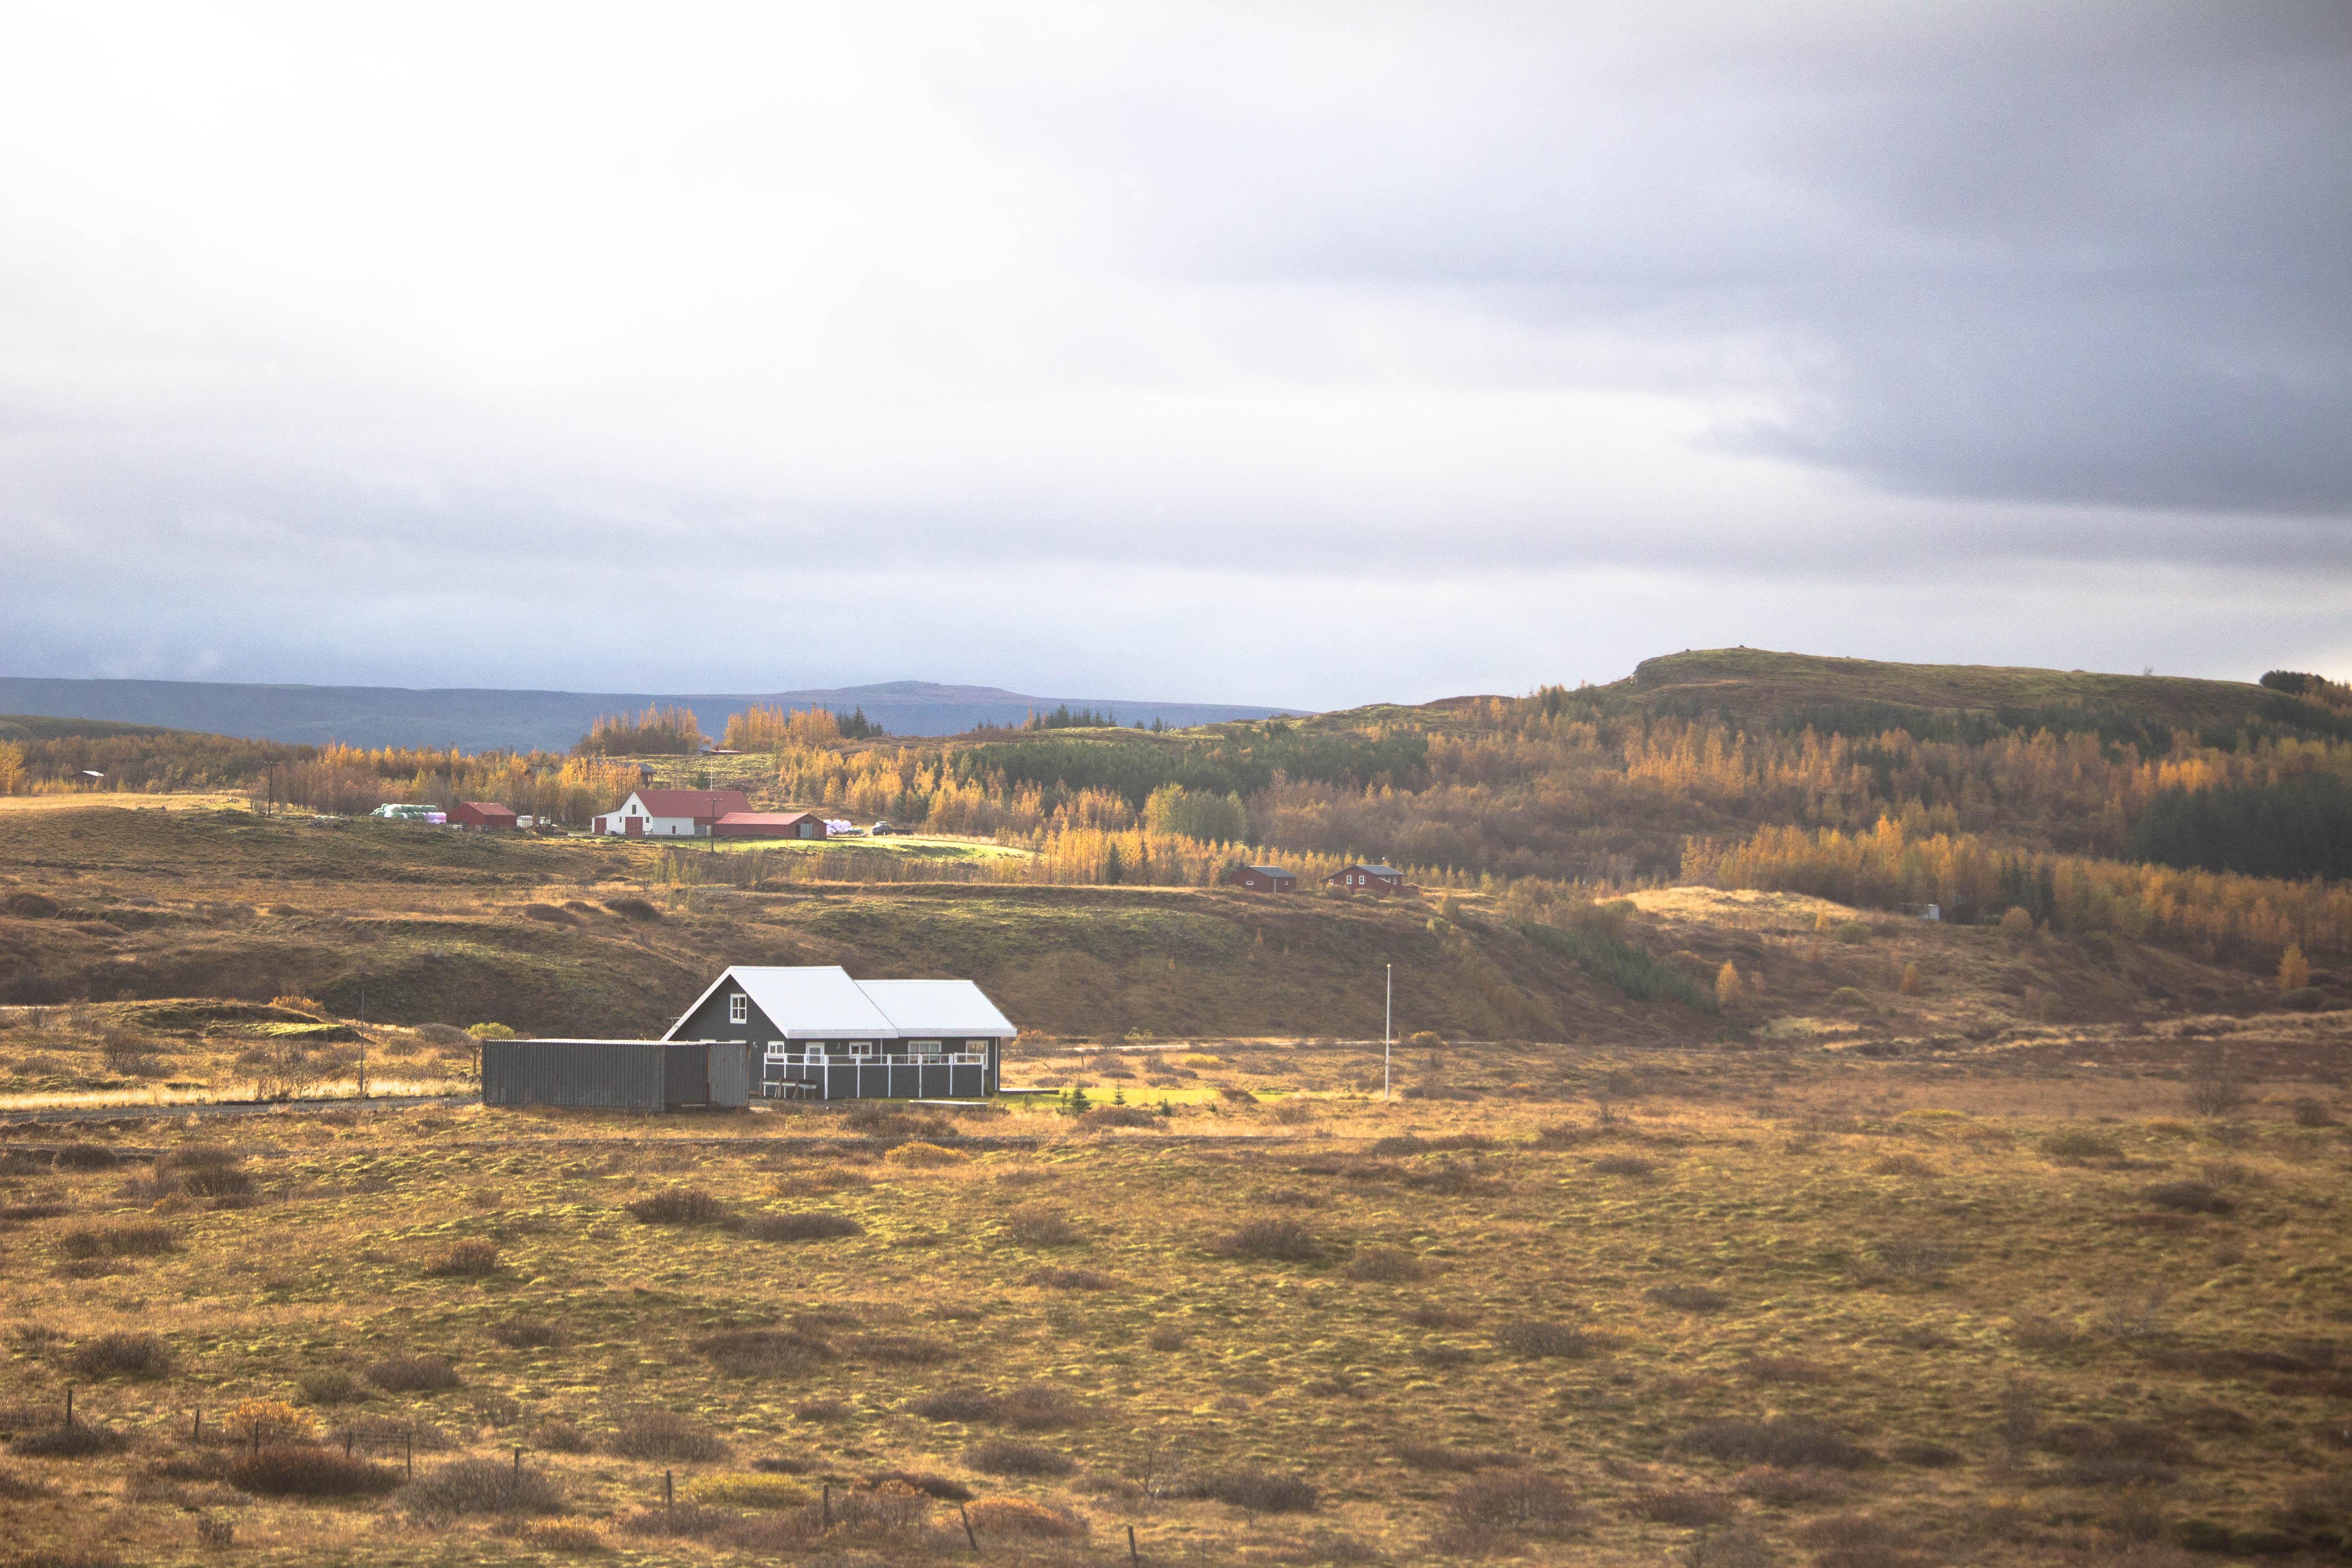 SS_ICELAND_10-17_51 (1 of 1)